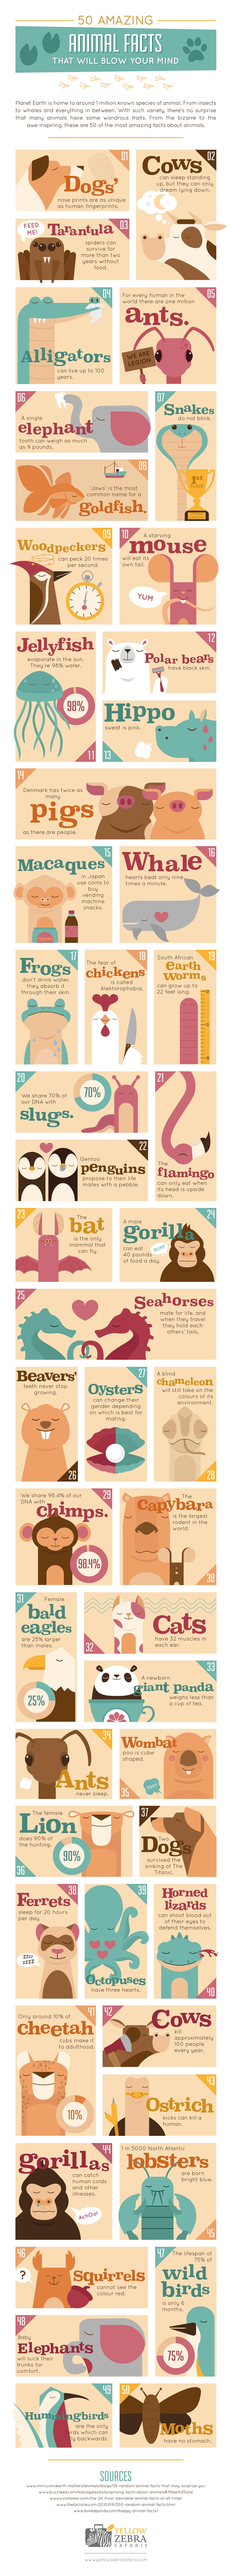 50 Mind-Blowing Facts from the Animal World - Infographic